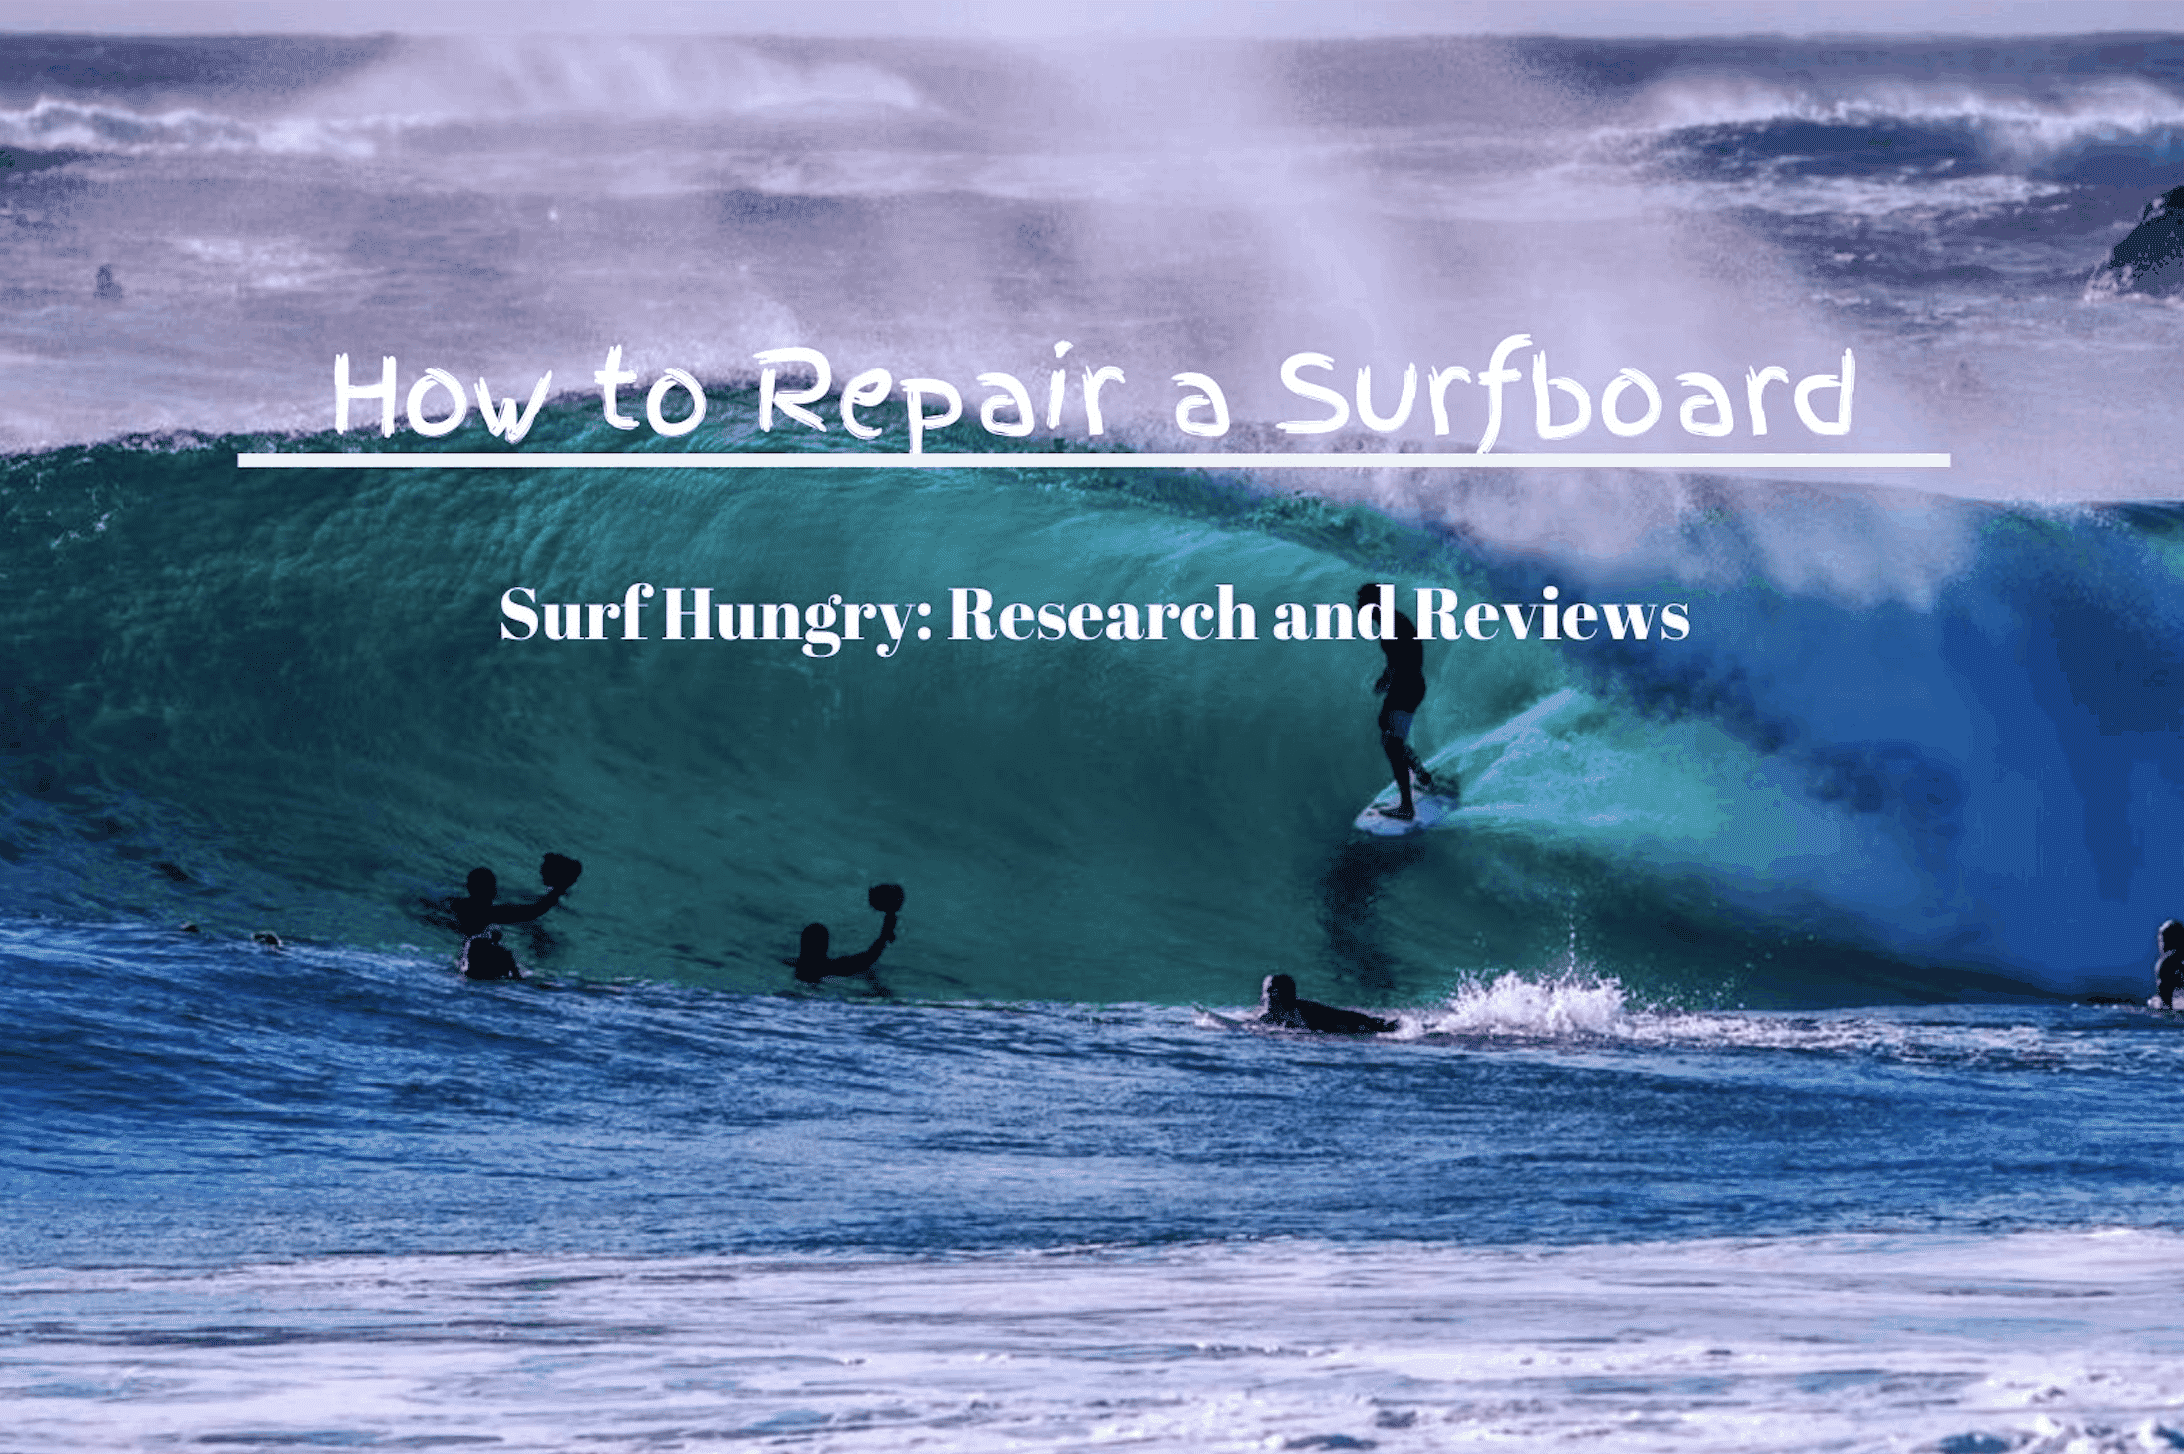 how to repair a surfboard